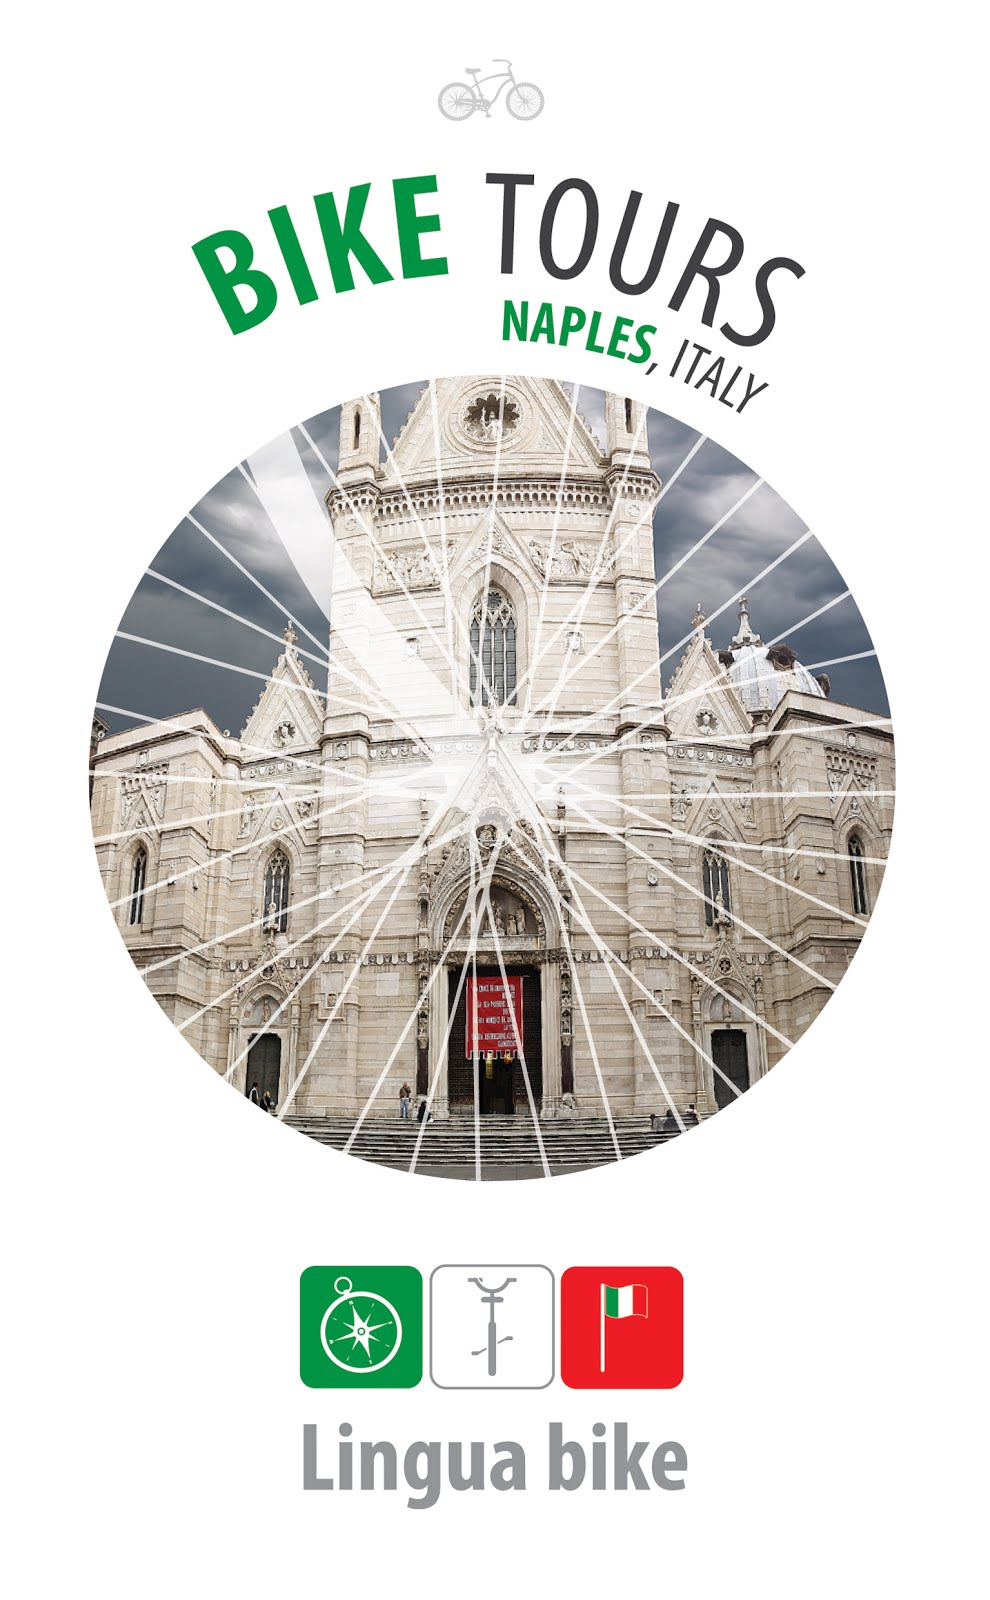 Bike tours around Naples